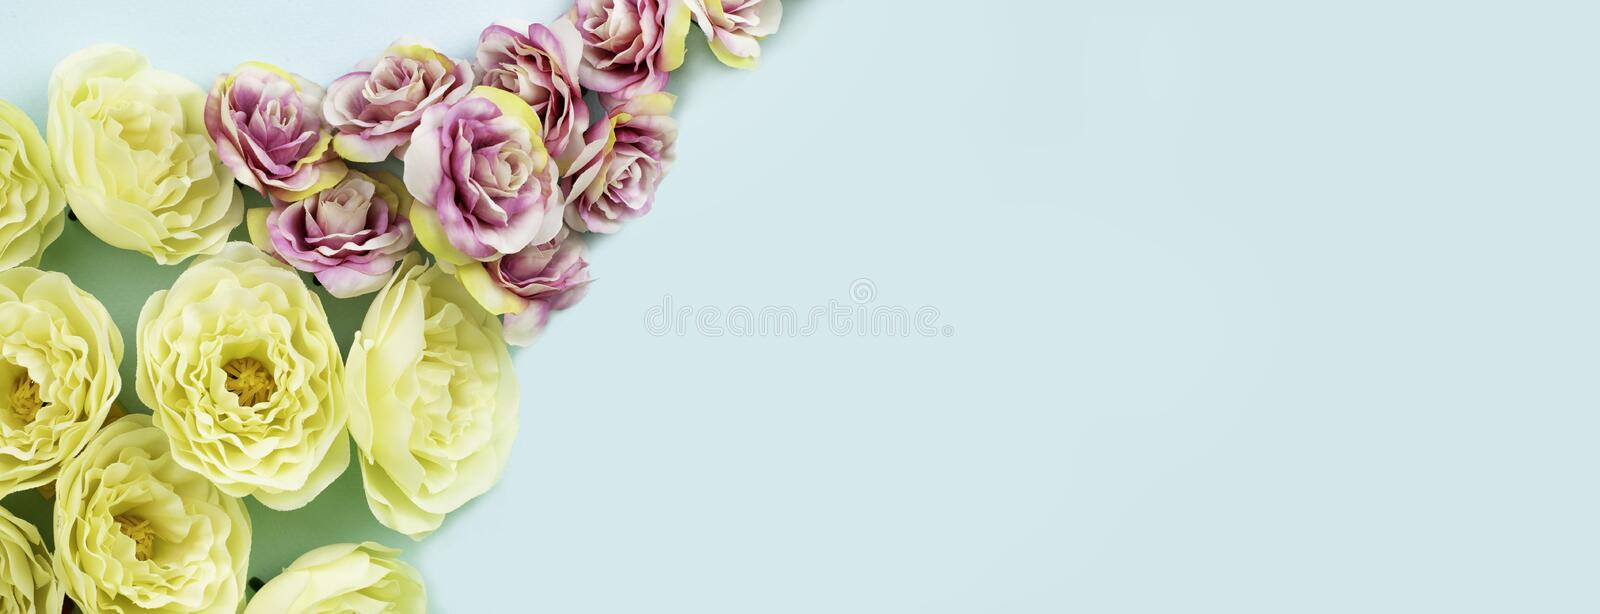 Yellow and pink roses on blue background. Space for text.  Banner format.  Greeting card concept. stock photo